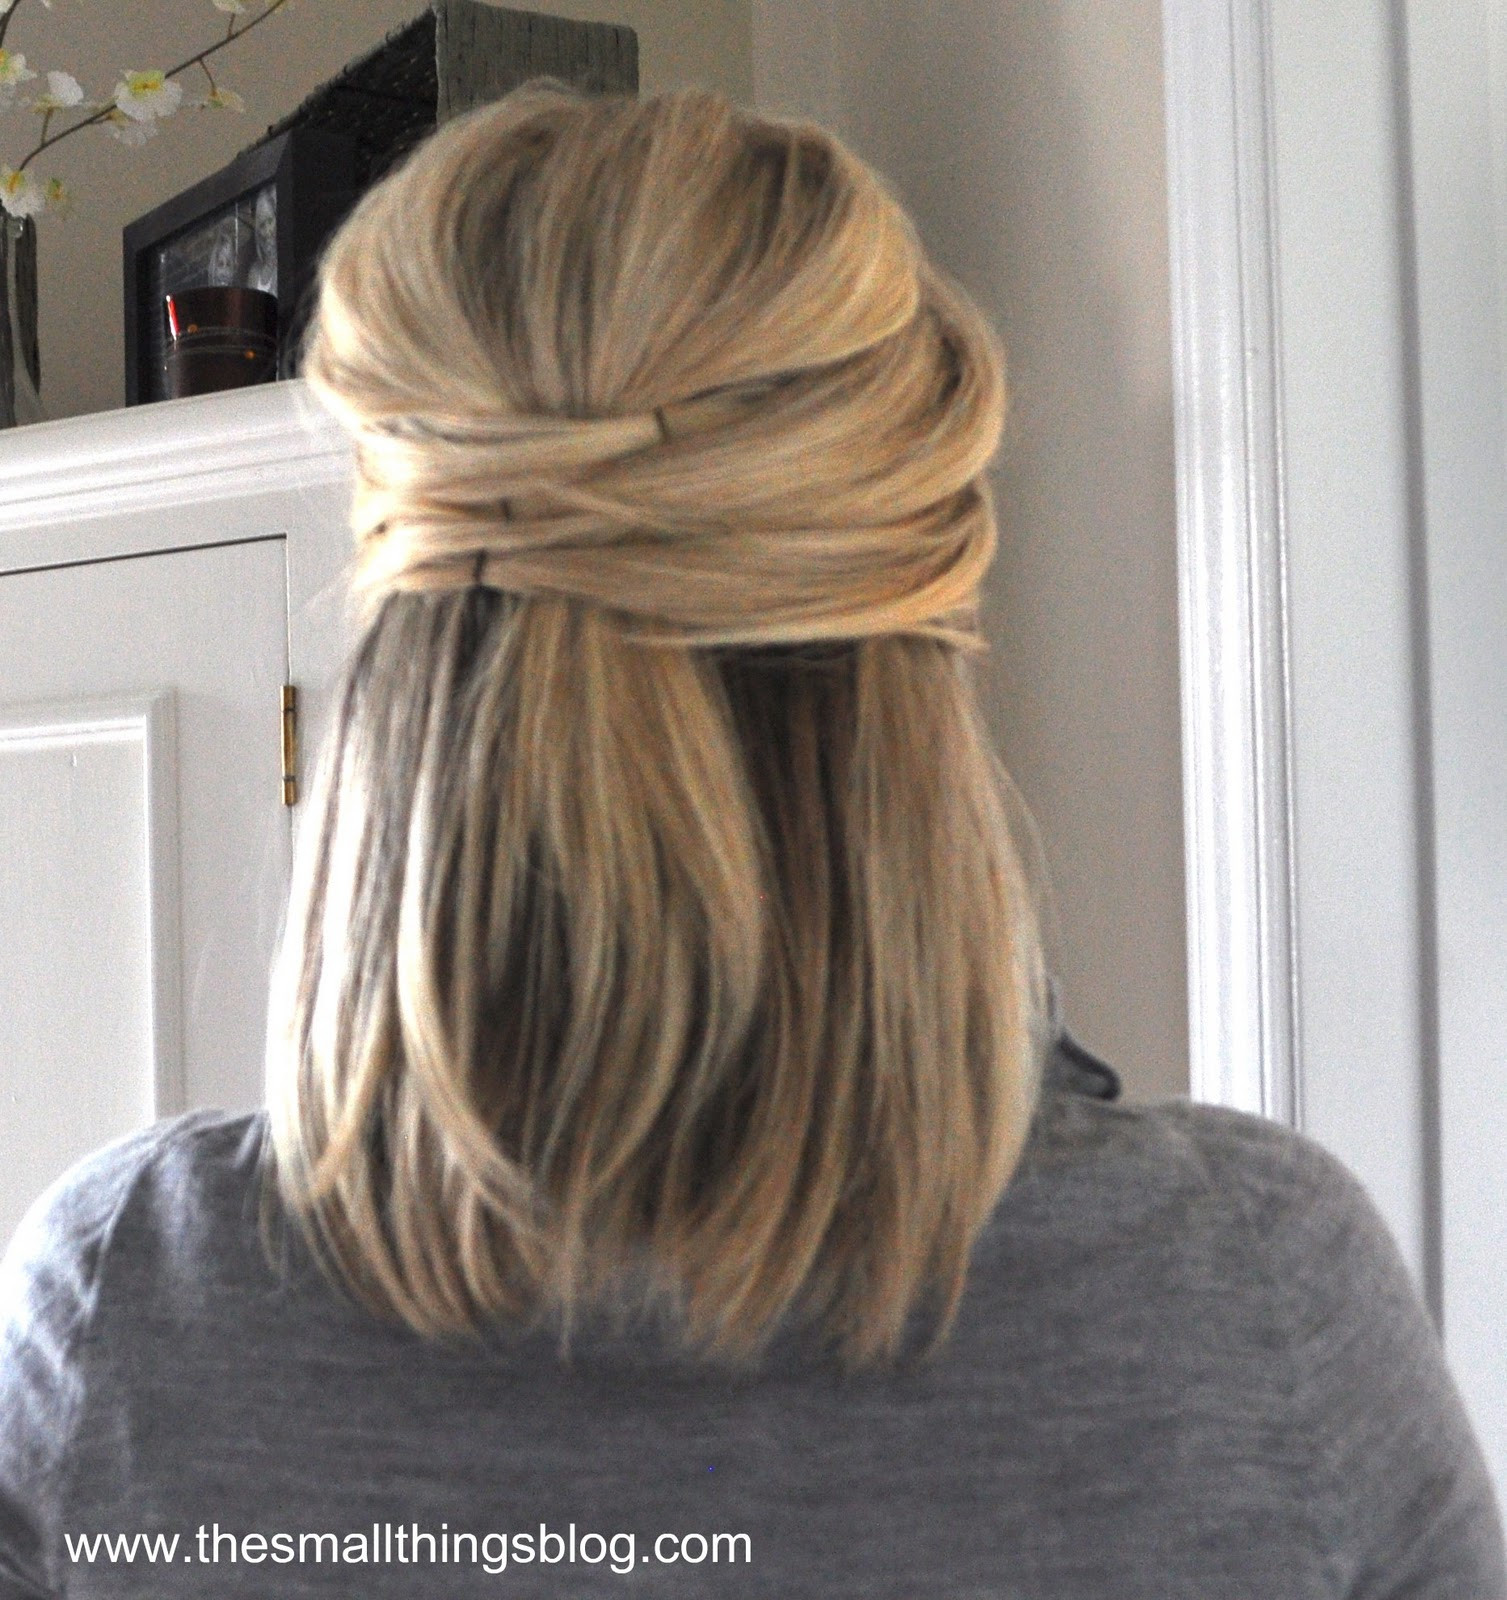 Cute Half Up Hairstyles  Elegant Half Up – The Small Things Blog